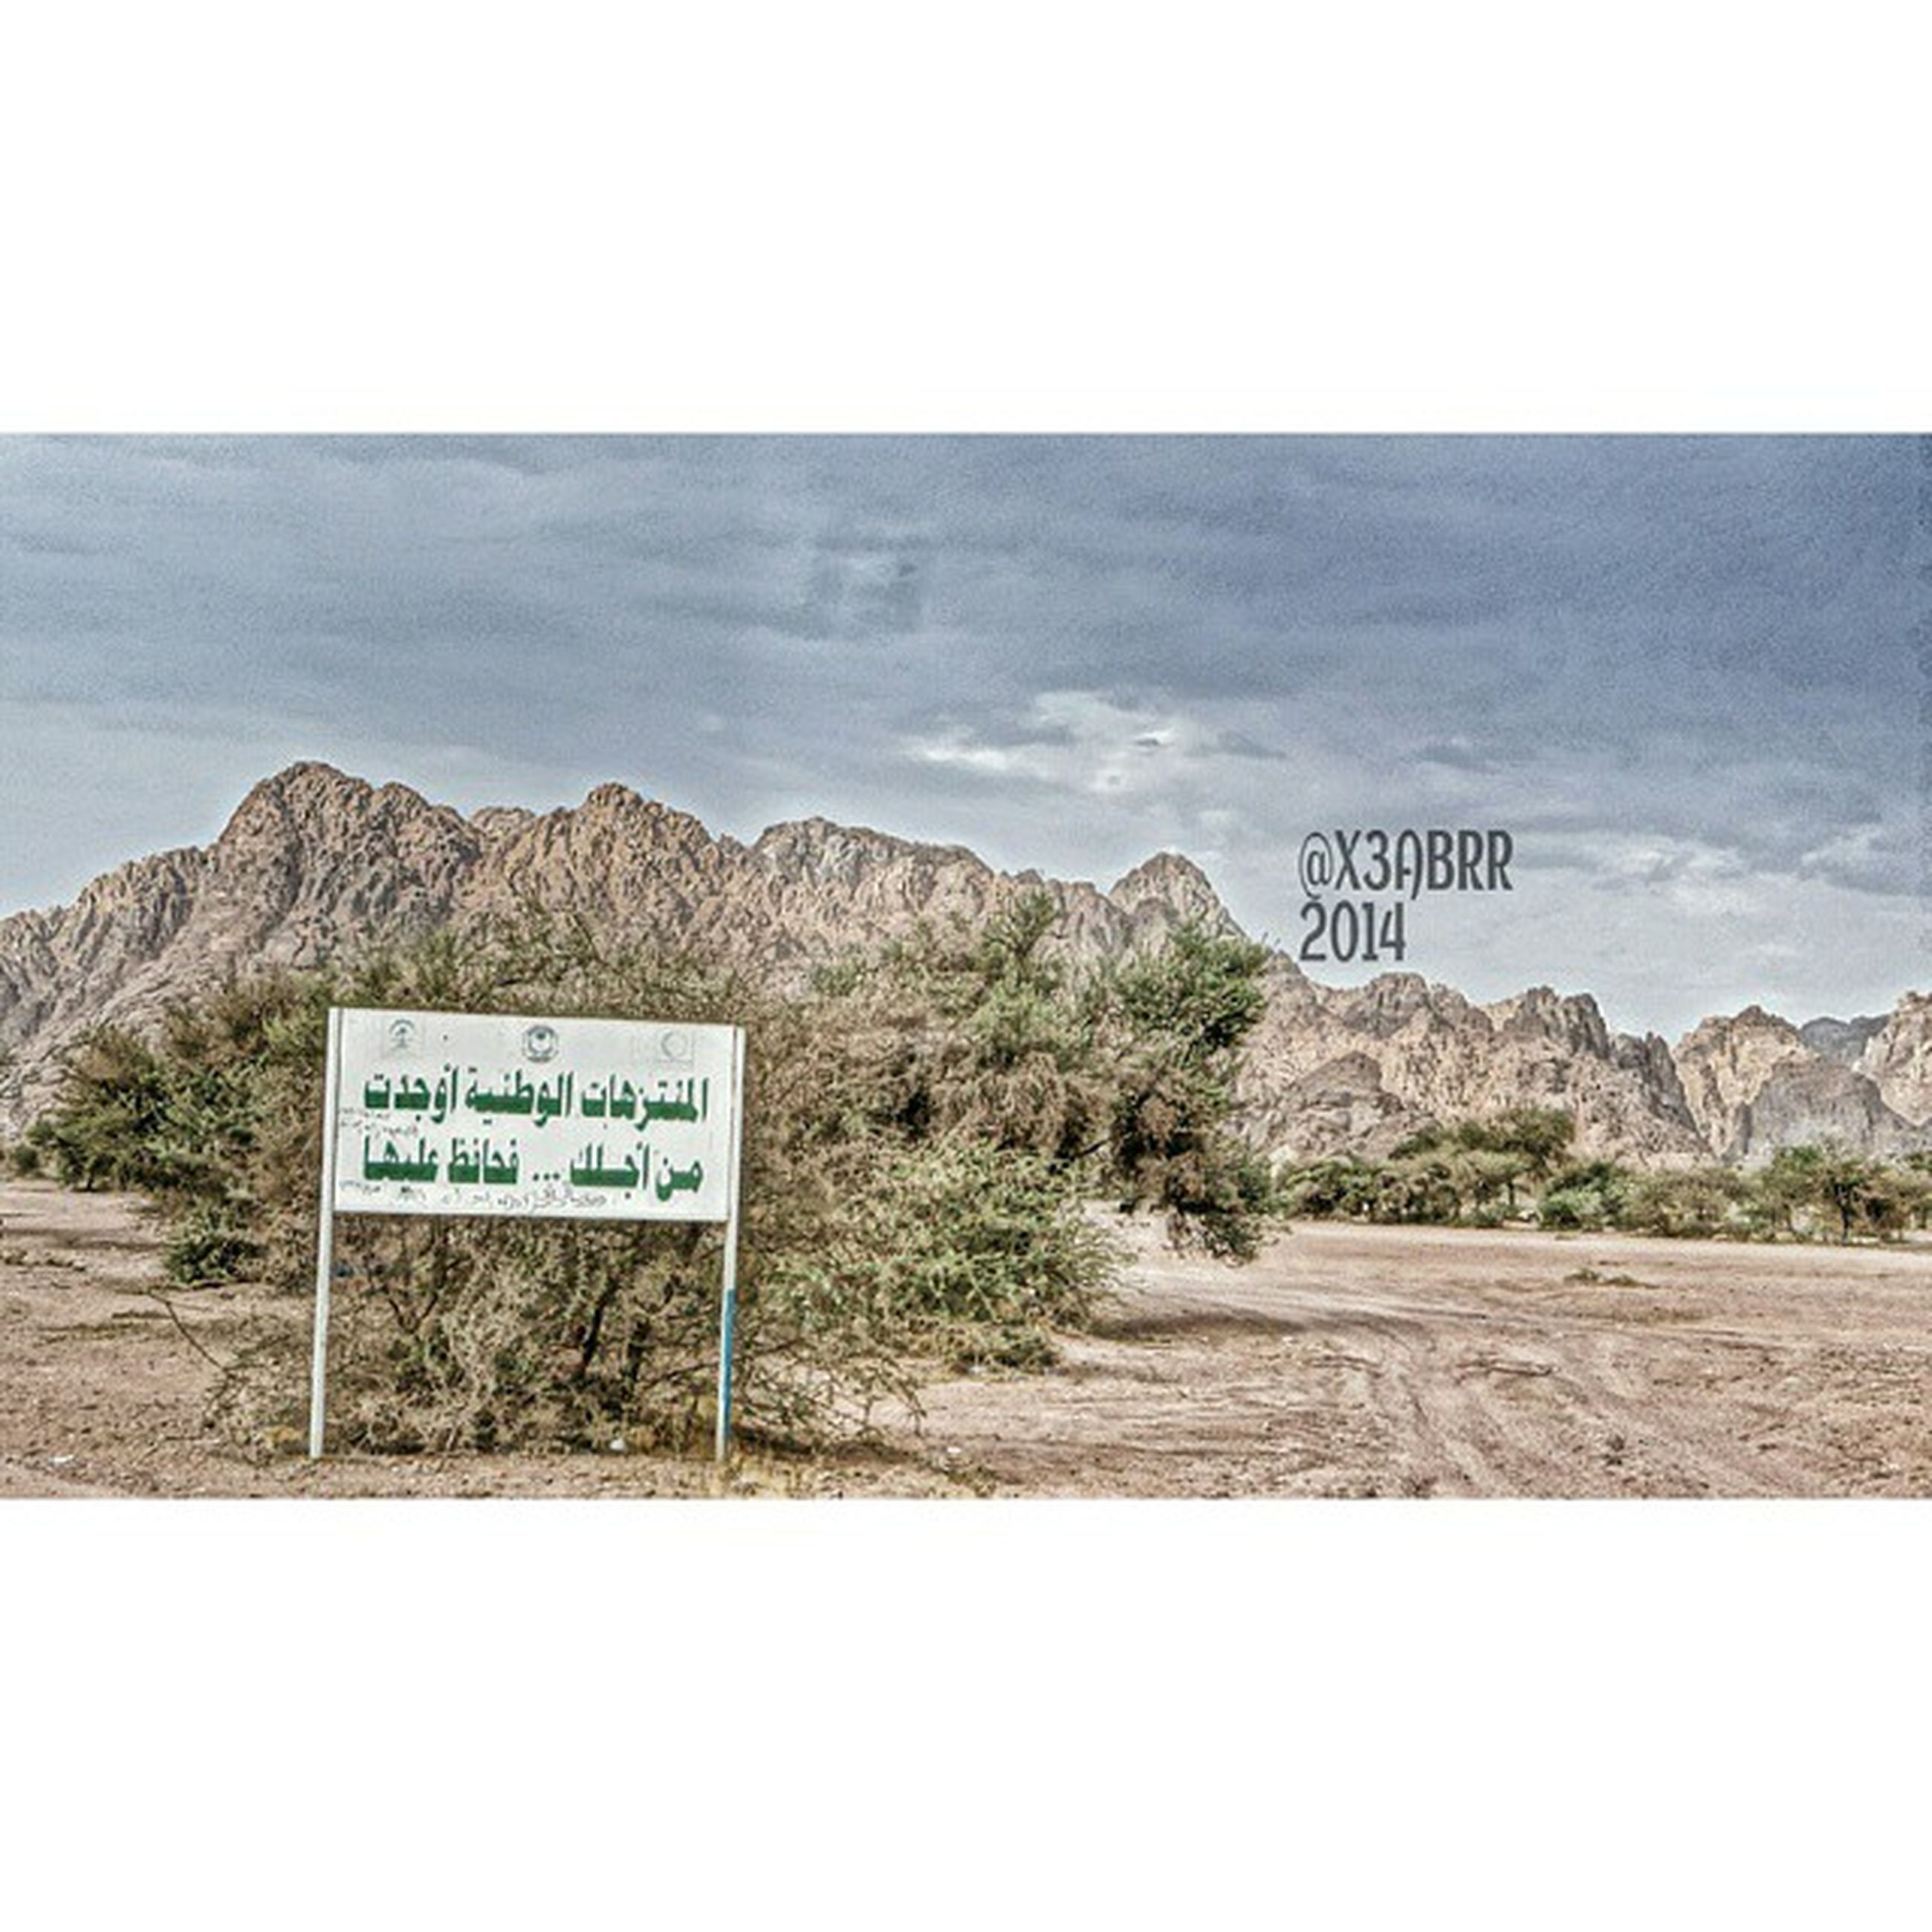 text, western script, communication, information sign, guidance, sign, mountain, sky, tranquil scene, tranquility, road sign, direction, scenics, warning sign, information, nature, non-western script, capital letter, landscape, road